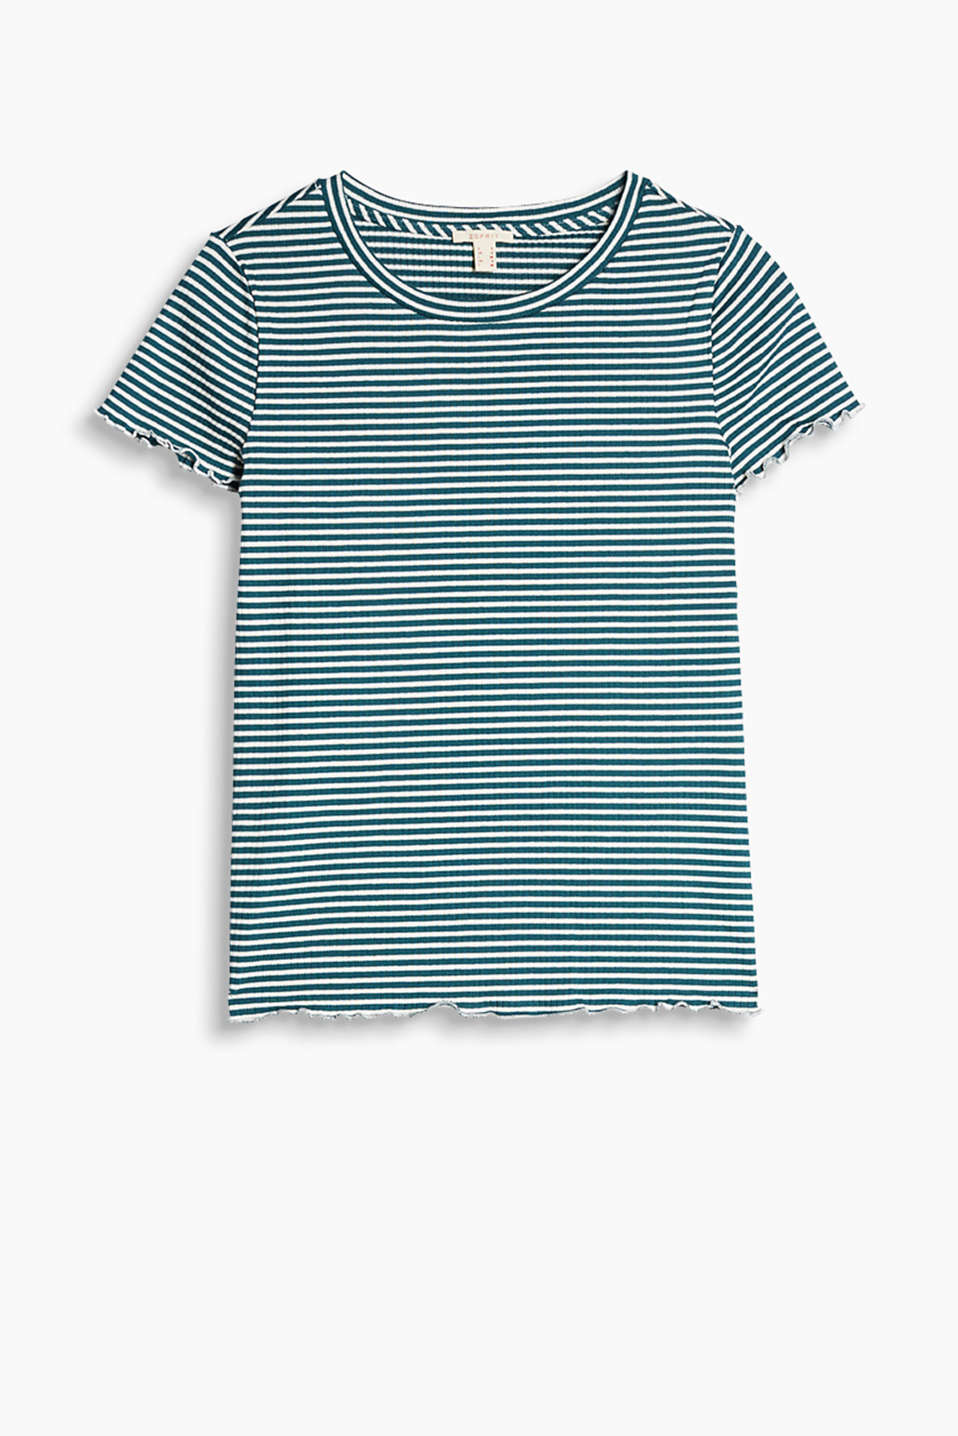 Ribbed T-shirt made of cotton with a percentage of stretch in a striped look